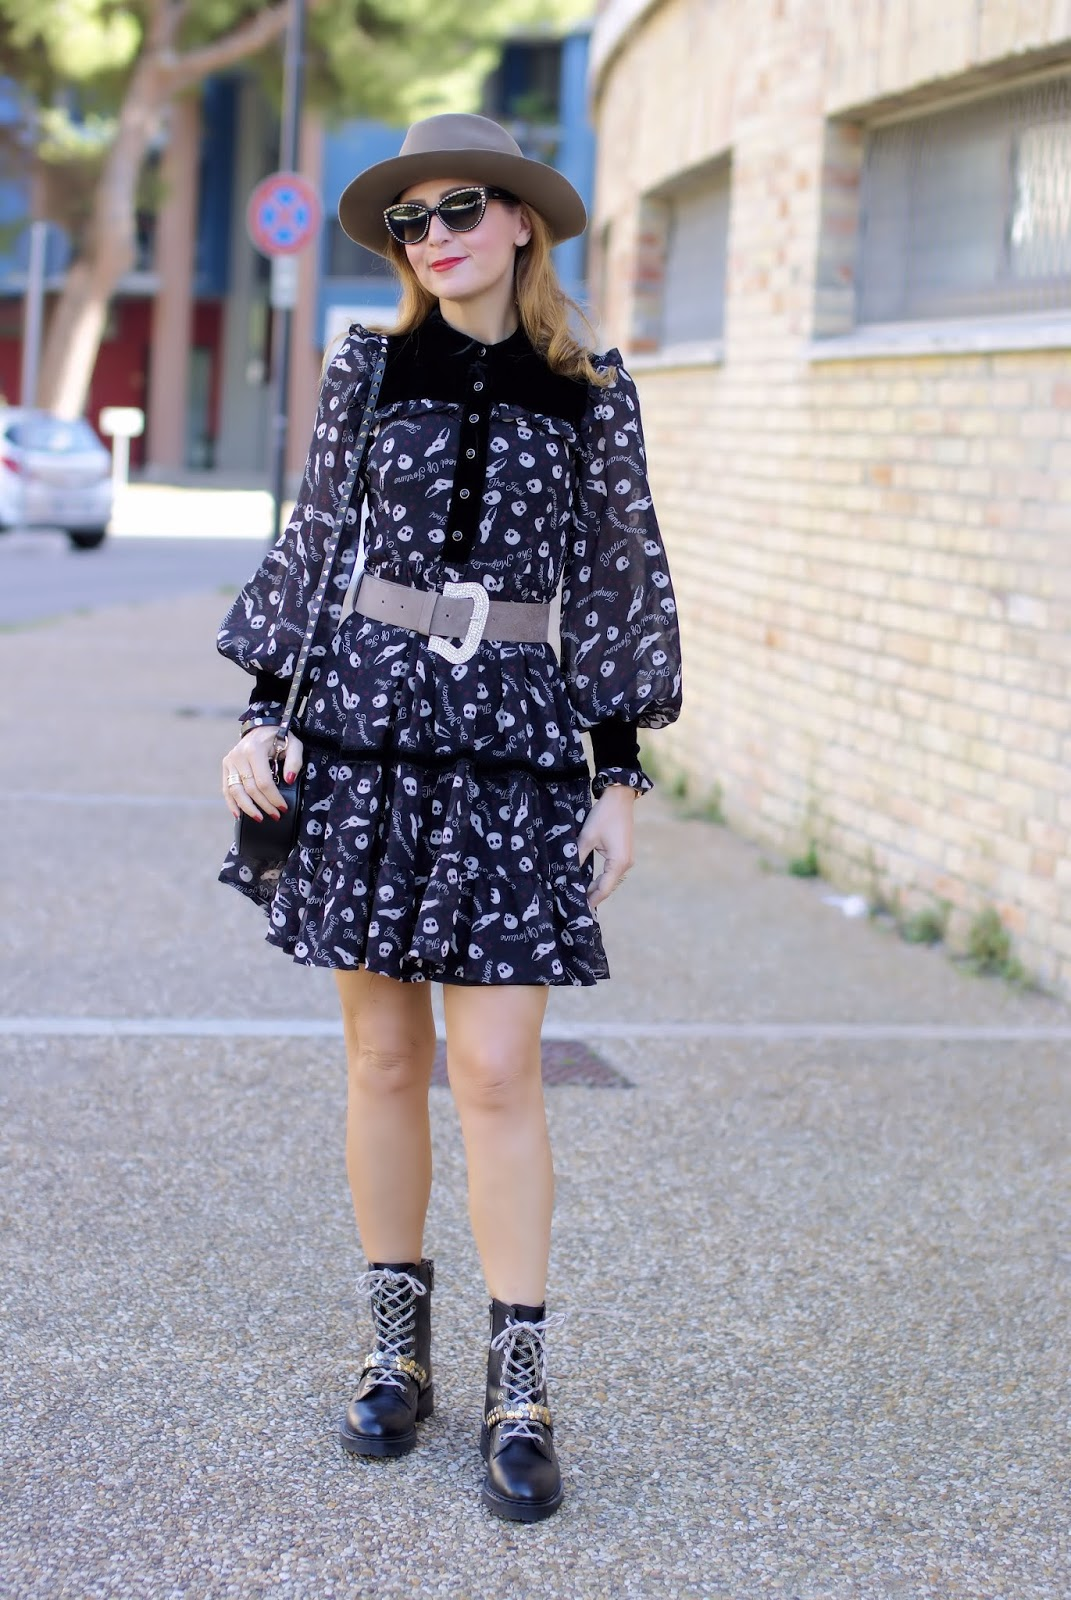 Halloween outfit idea: skull print dress from Maggie Sweet on Fashion and Cookies fashion blog, fashion blogger style